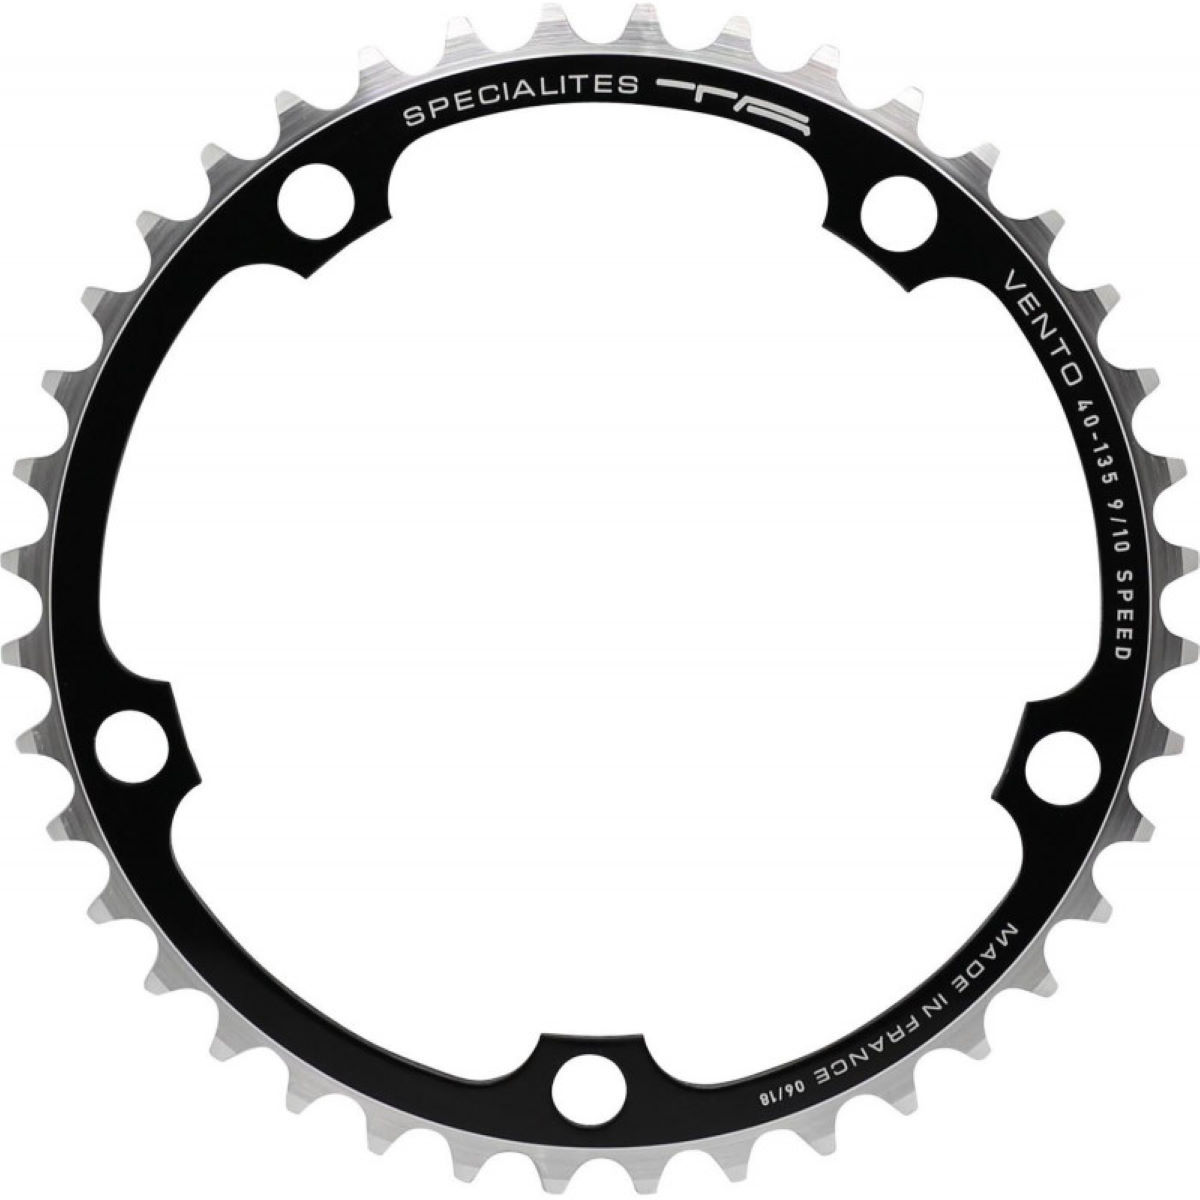 Ta Campagnolo Inner Chainring 135mm Bcd - 39t Black   Chain Rings